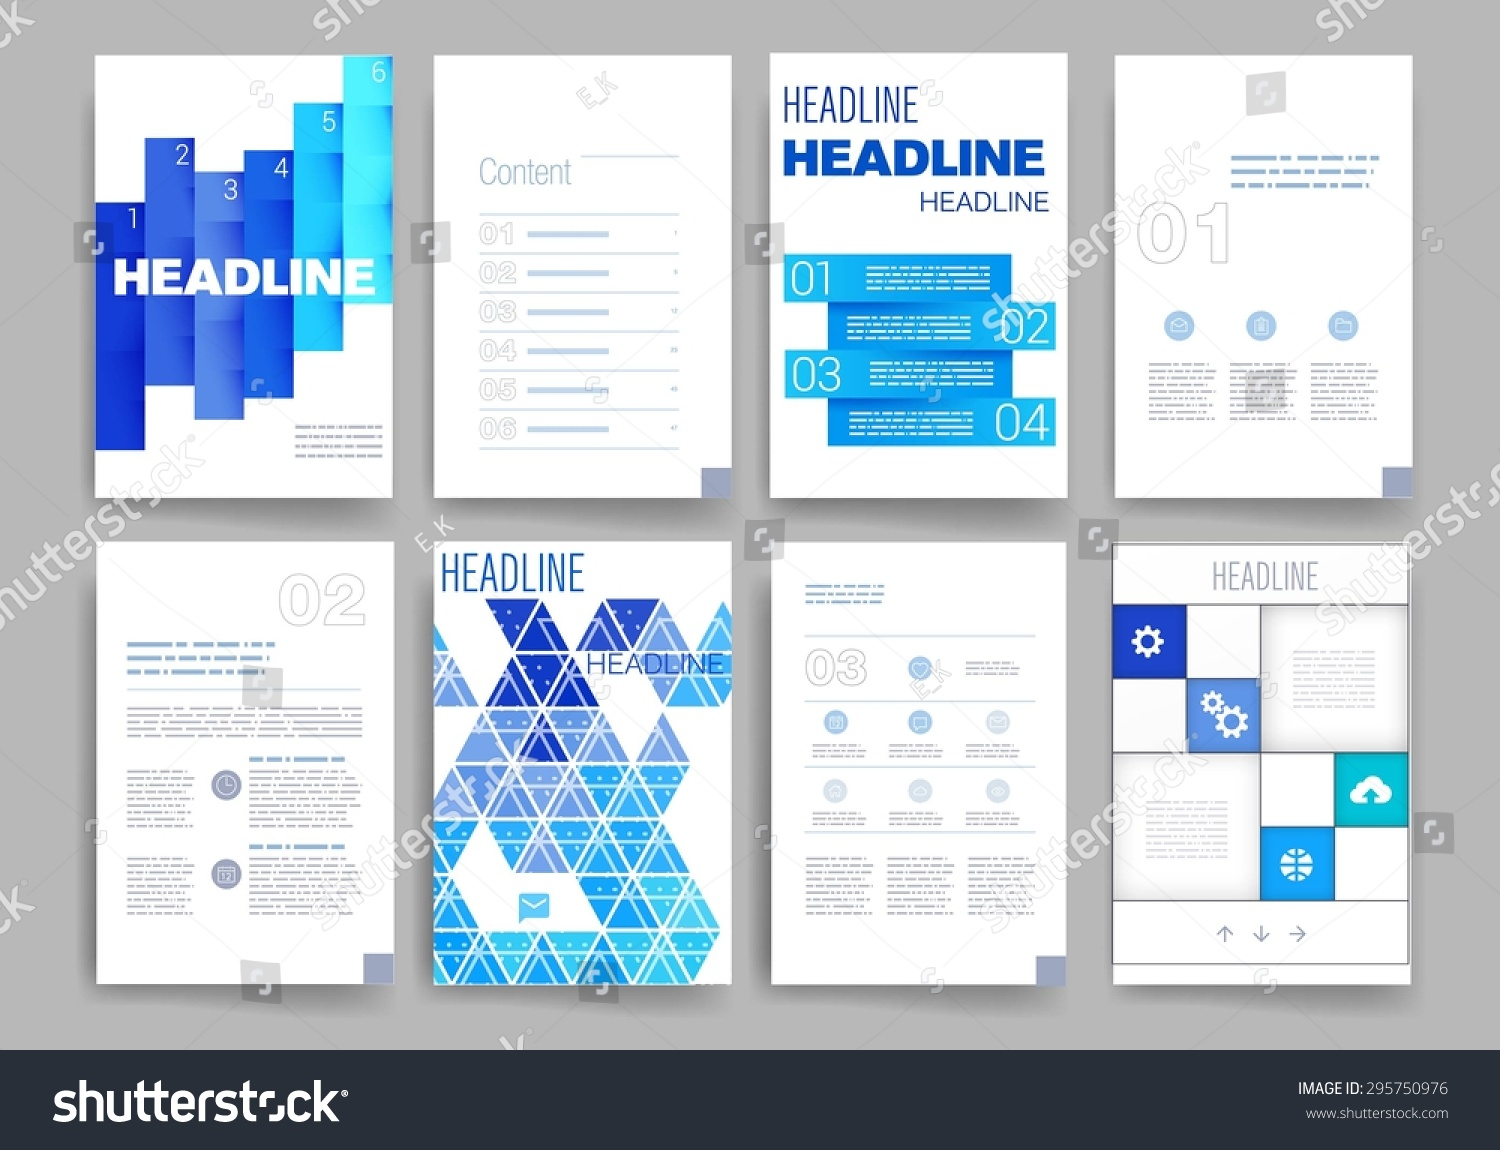 Cute 1 Year Experience Java Resume Format Thick 1 Year Experience Resume Format For Java Developer Solid 1.5 Button Template 10 Words Not To Put On Your Resume Young 100 Winning Resumes For Top Jobs Pdf Red2 Page Resumes Ok Royalty Free Brochure Design Template Set. Templates\u2026 #295750976 ..